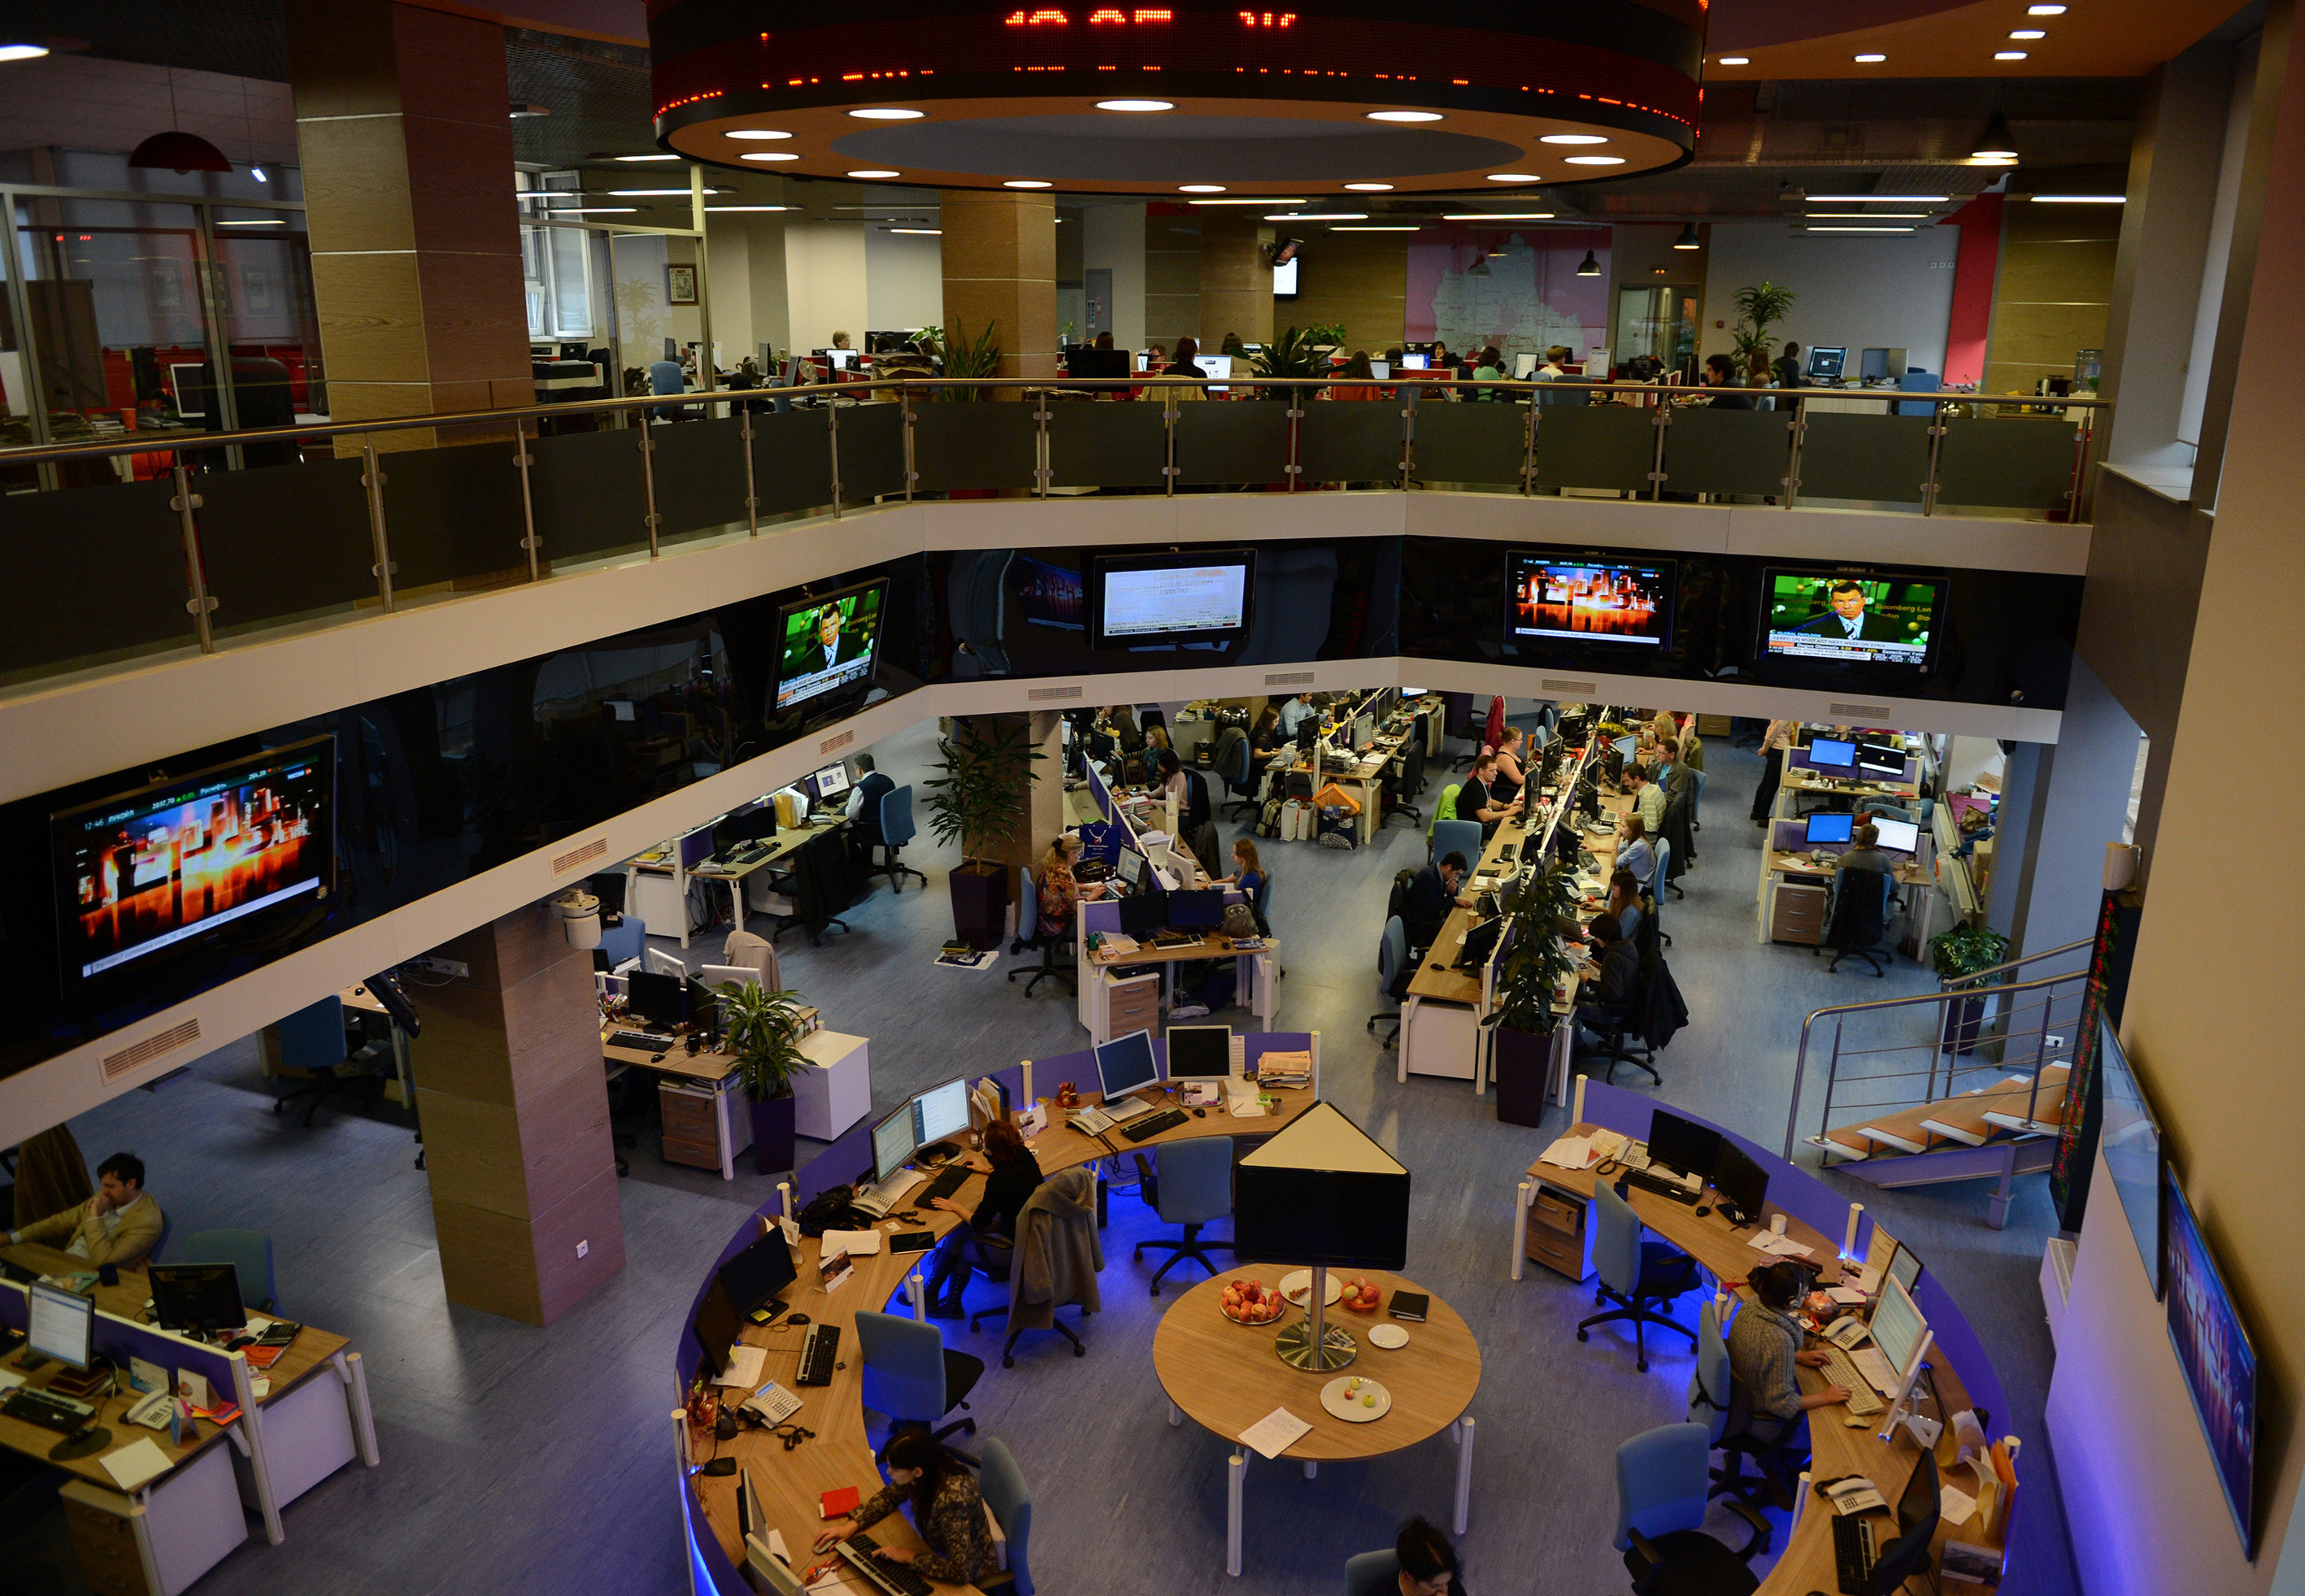 An internal view of the former Russian RIA Novosti news agency headquarters, which is now Rossia Segodnya (Russia Today) global news agency since President Vladimir Putin signed a decree liquidating the former news agency, in the capital Moscow, on Dec, 12, 2013.